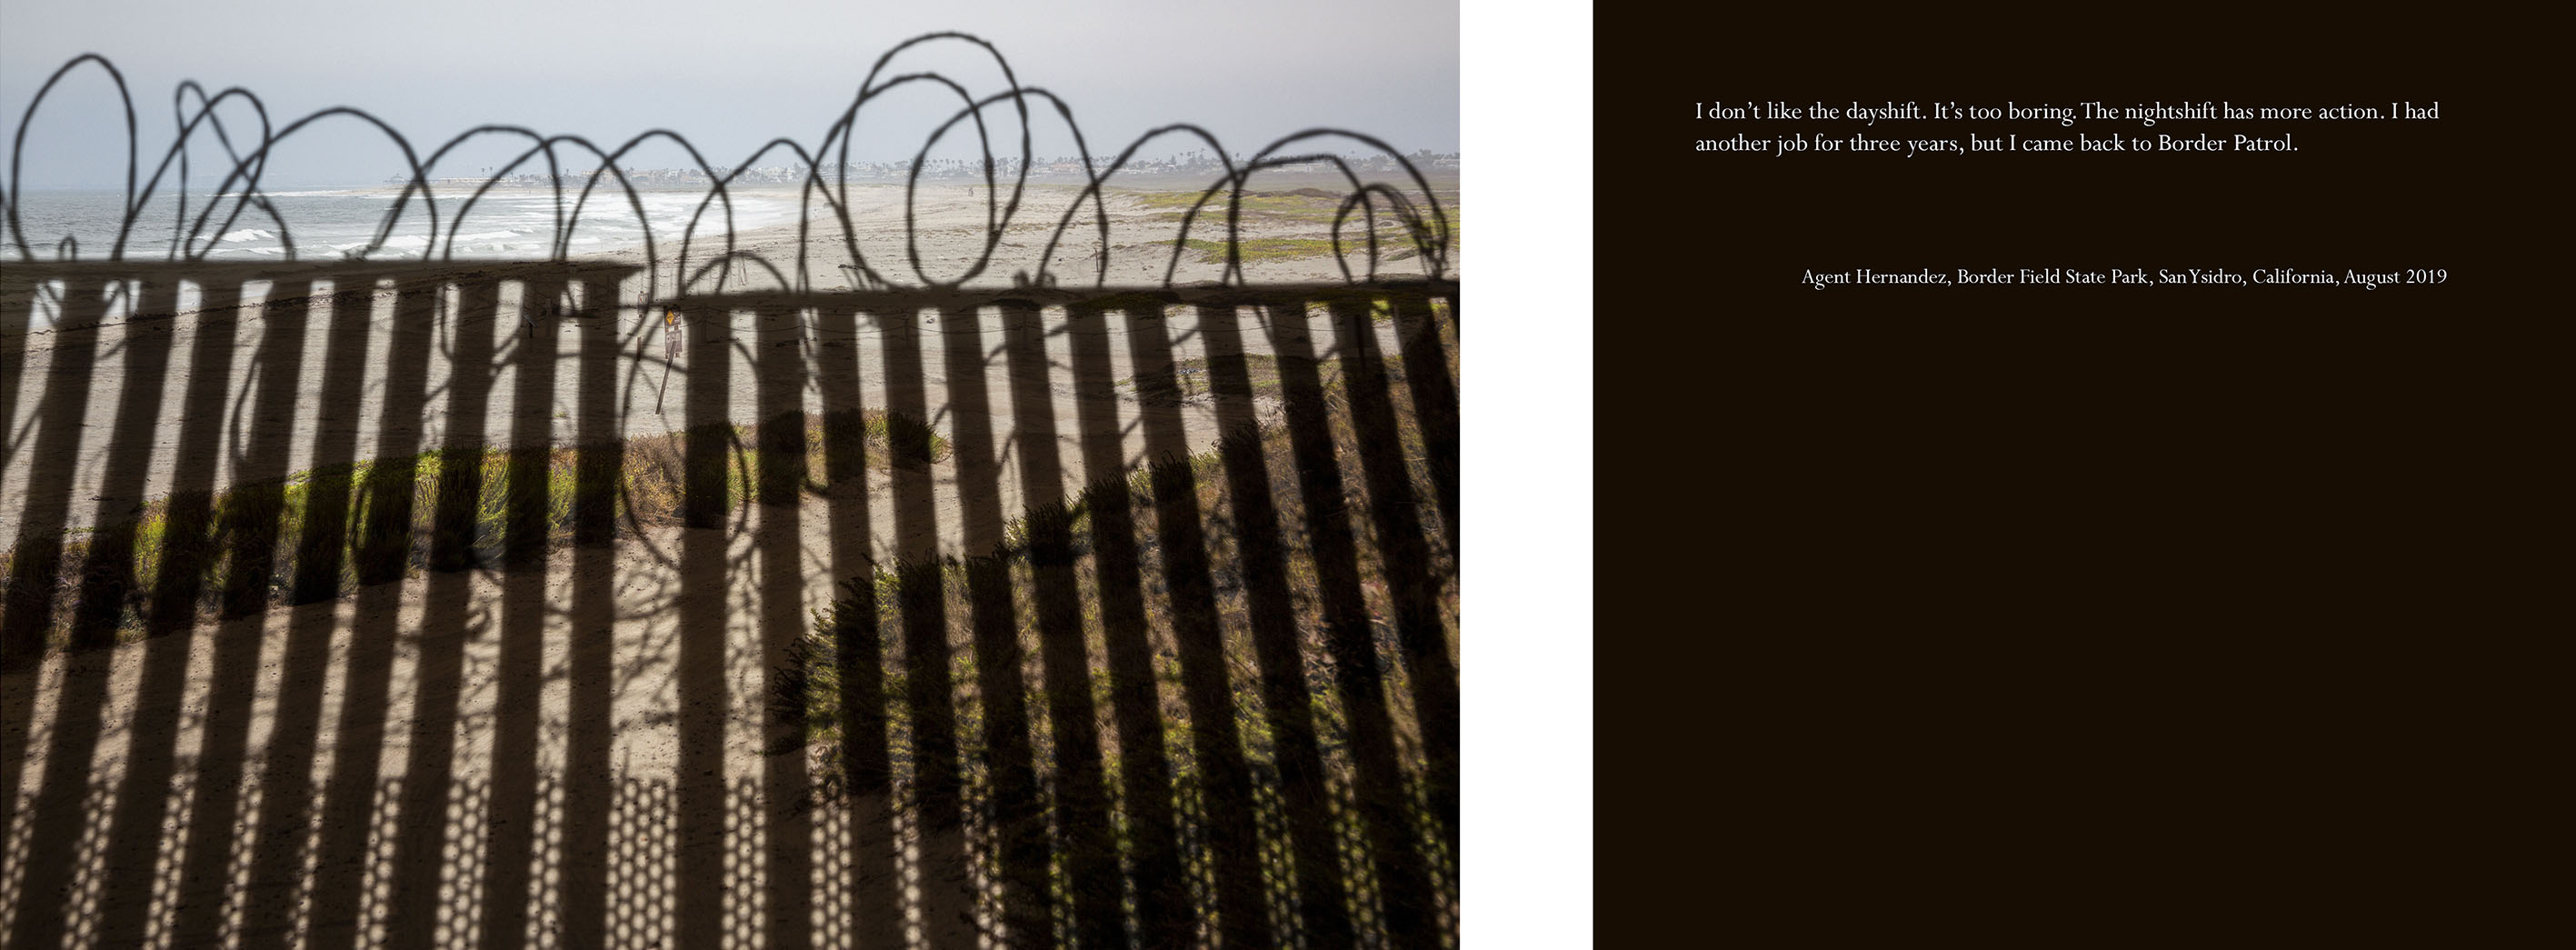 beach scene with shadows of a fence with razor wire